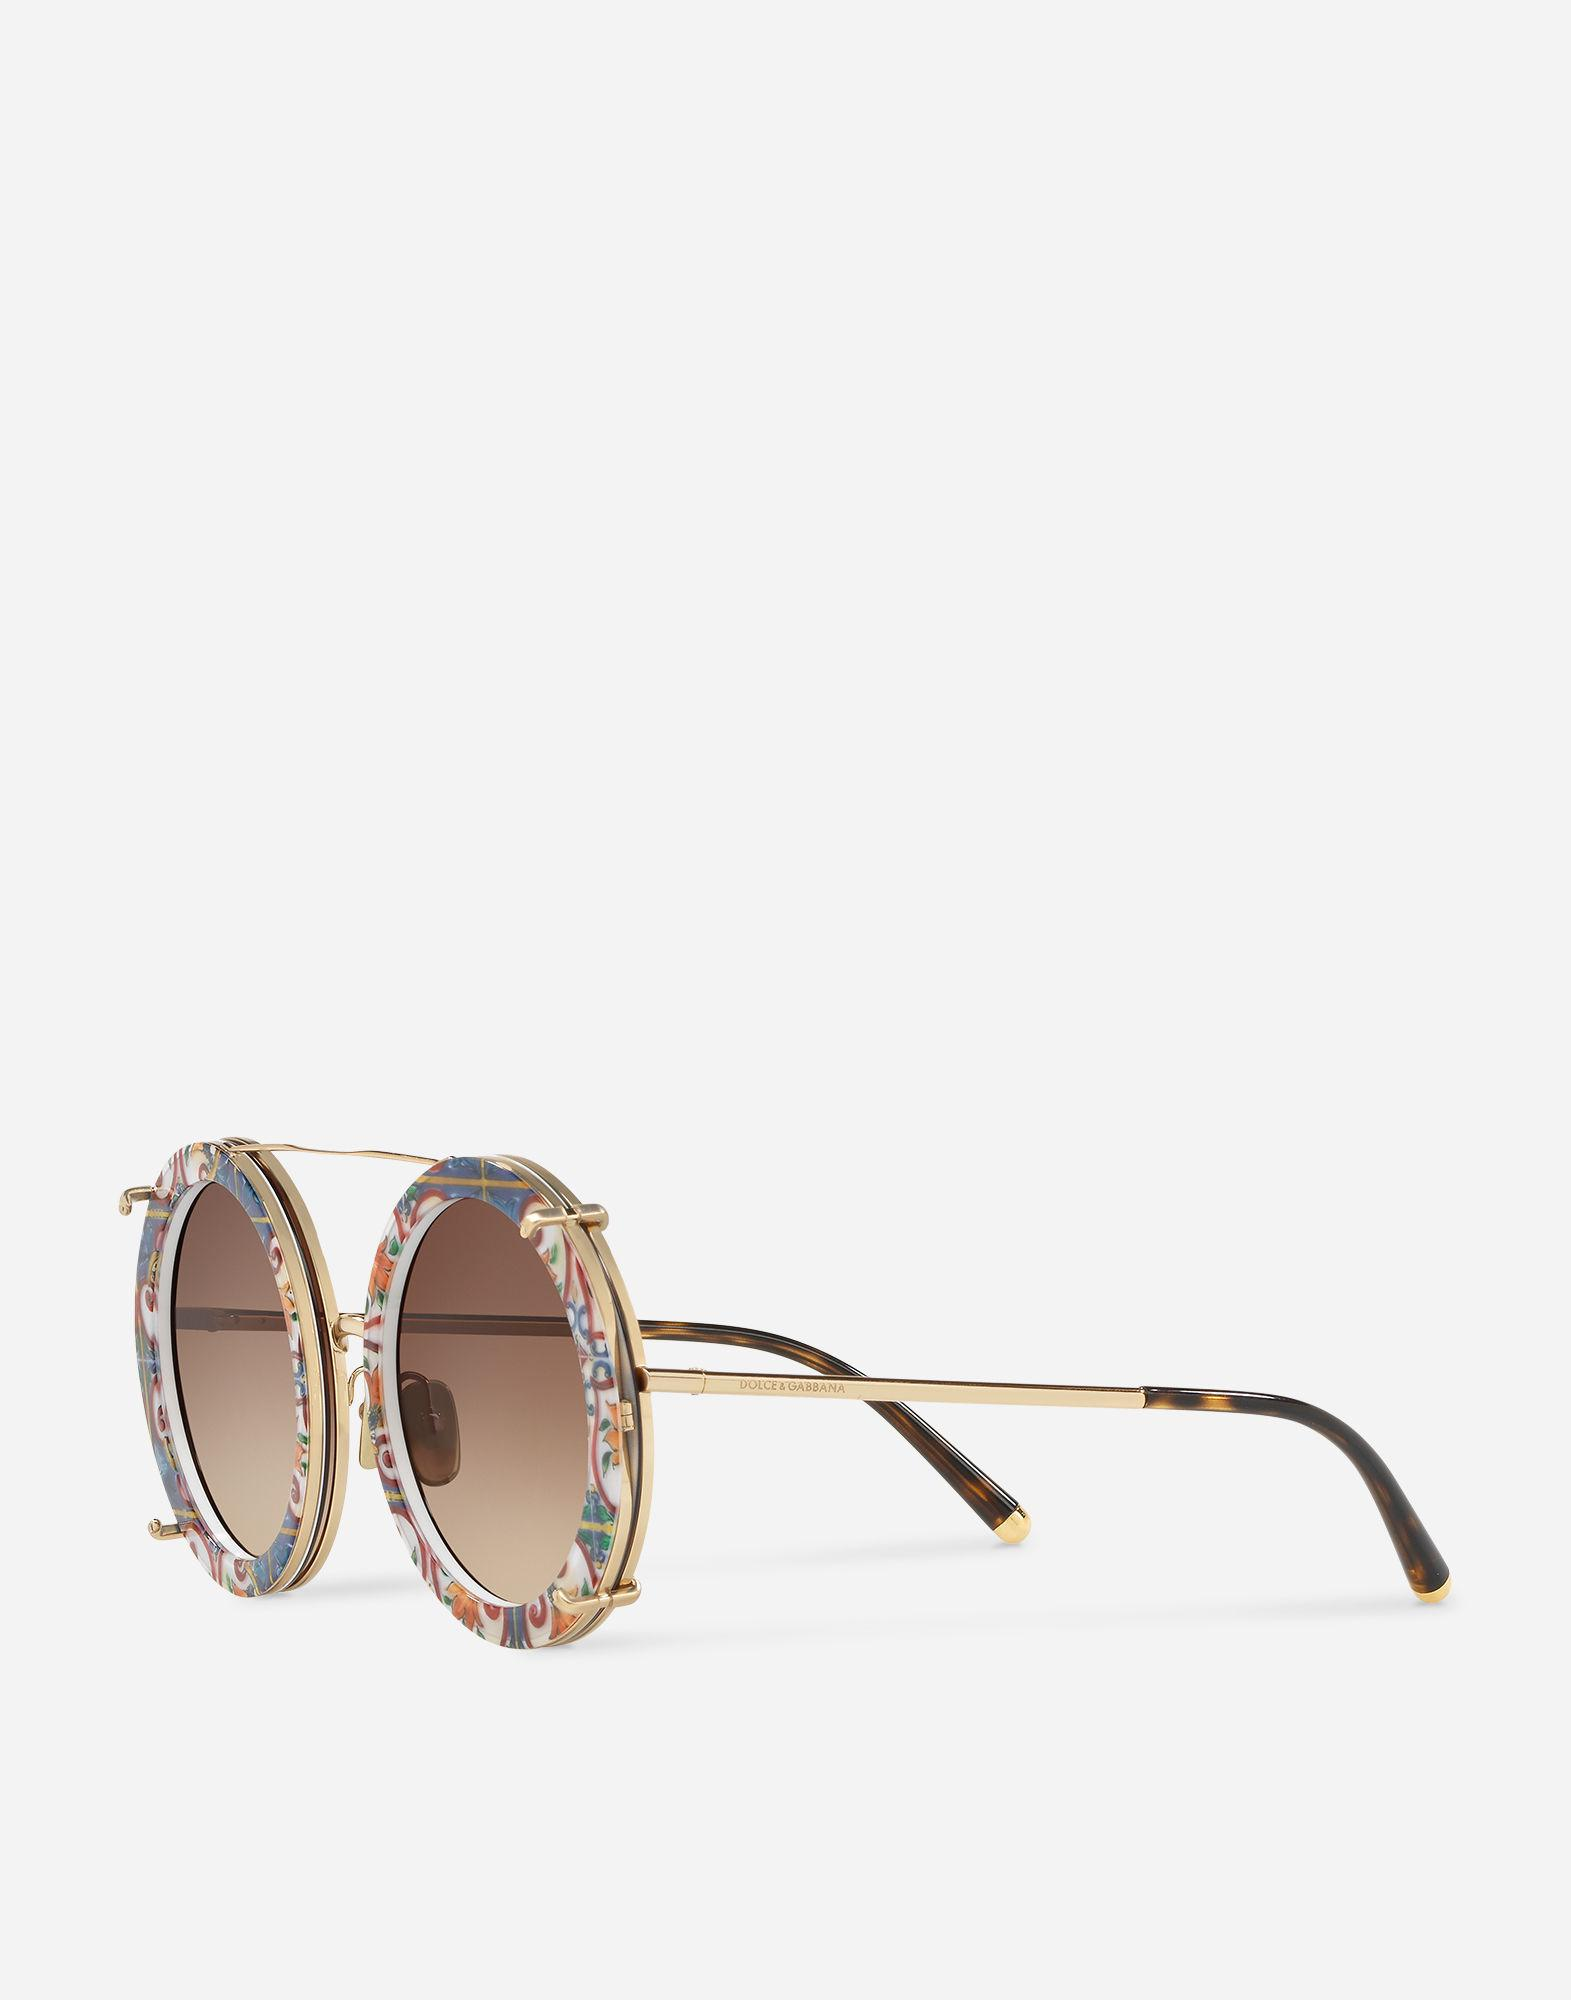 6c5ffc9142c Lyst - Dolce   Gabbana Round Clip-on Sunglasses In Gold Metal In Majolica  Print in Metallic